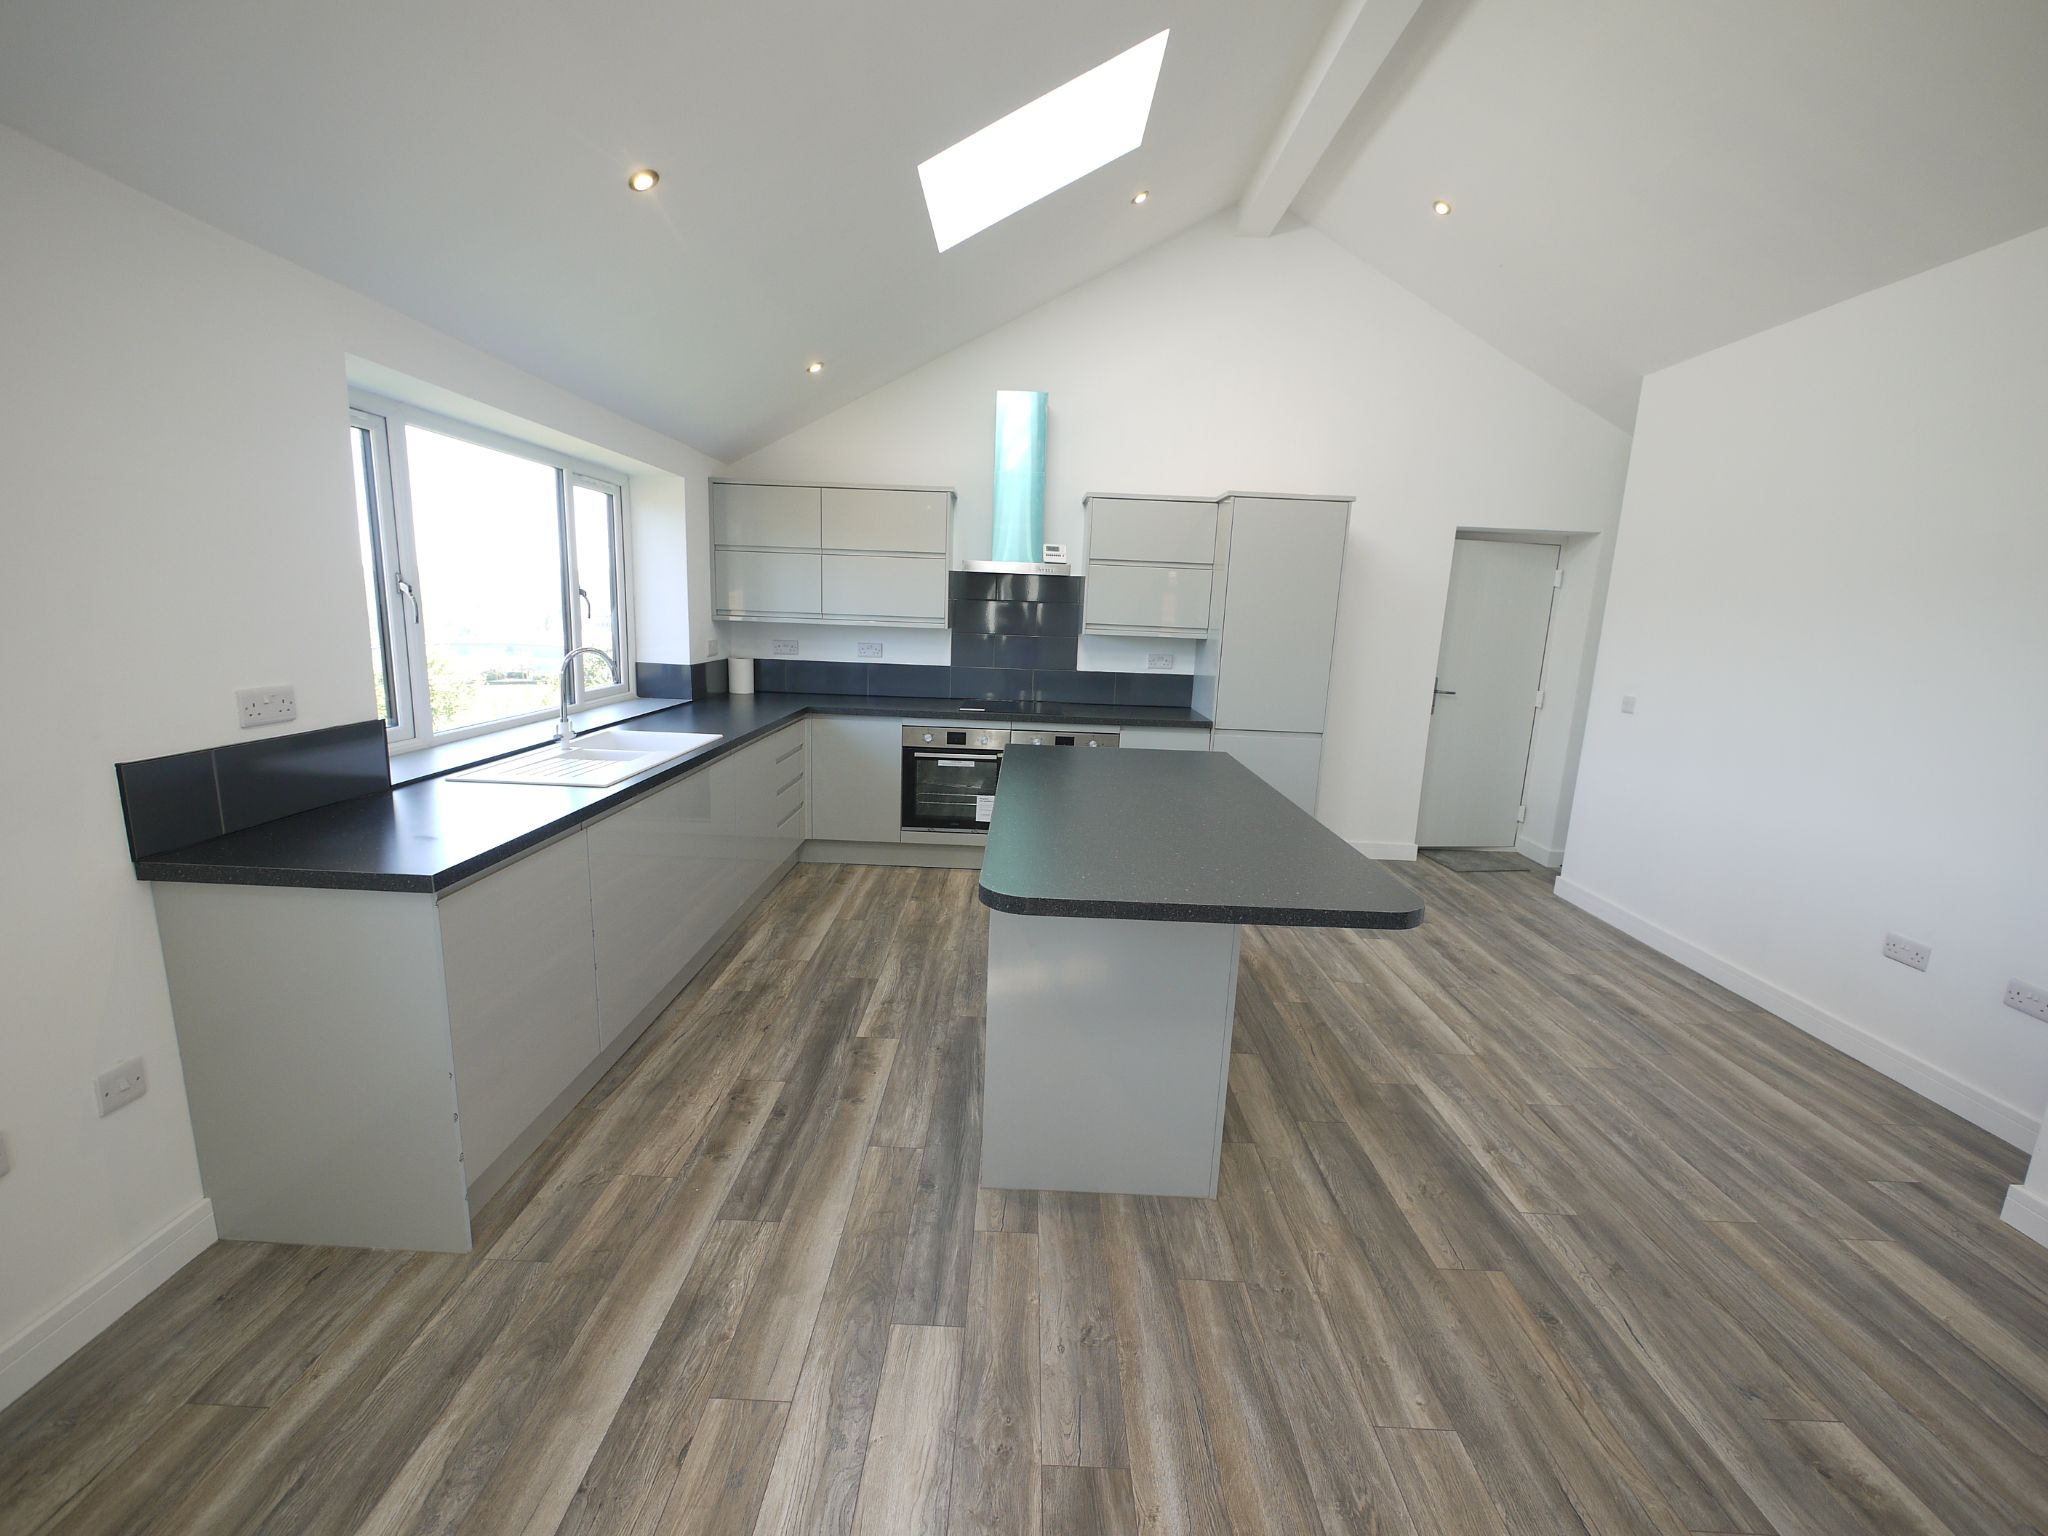 3 bedroom detached house For Sale in Brighouse - Dining Kit 2.